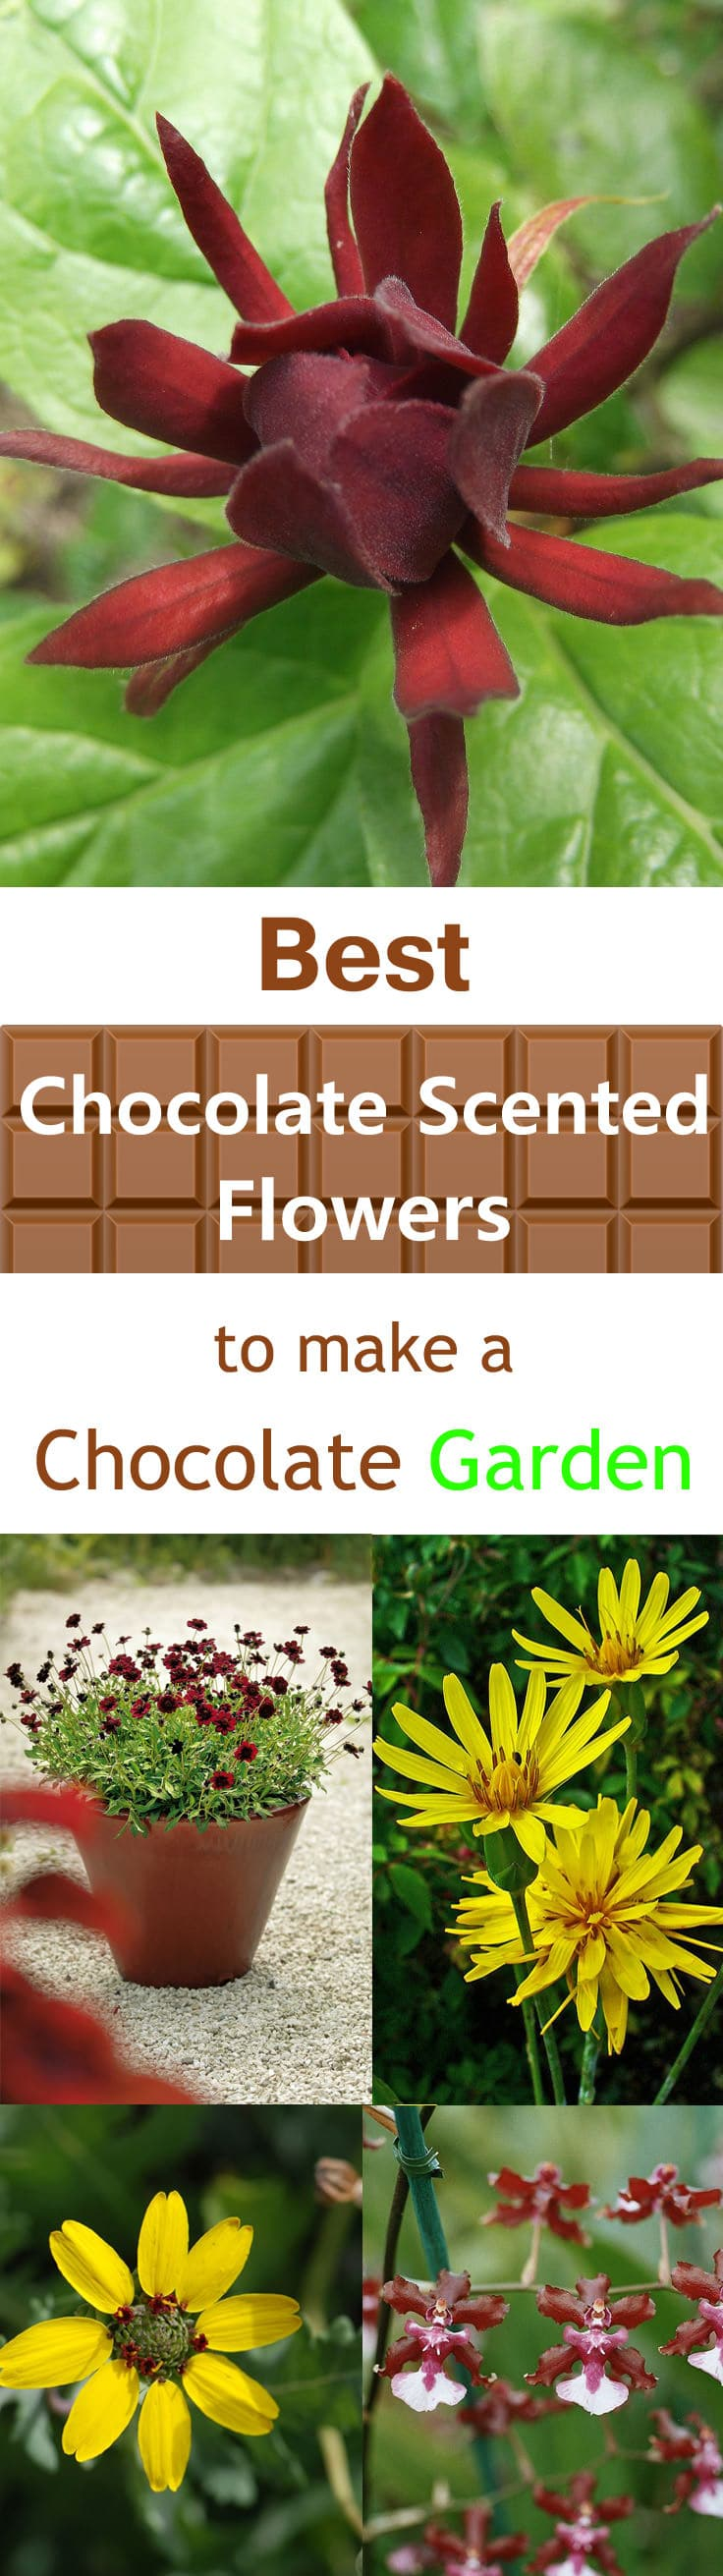 Best Chocolate Scented Flowers Plants And Flowers That Smell Like